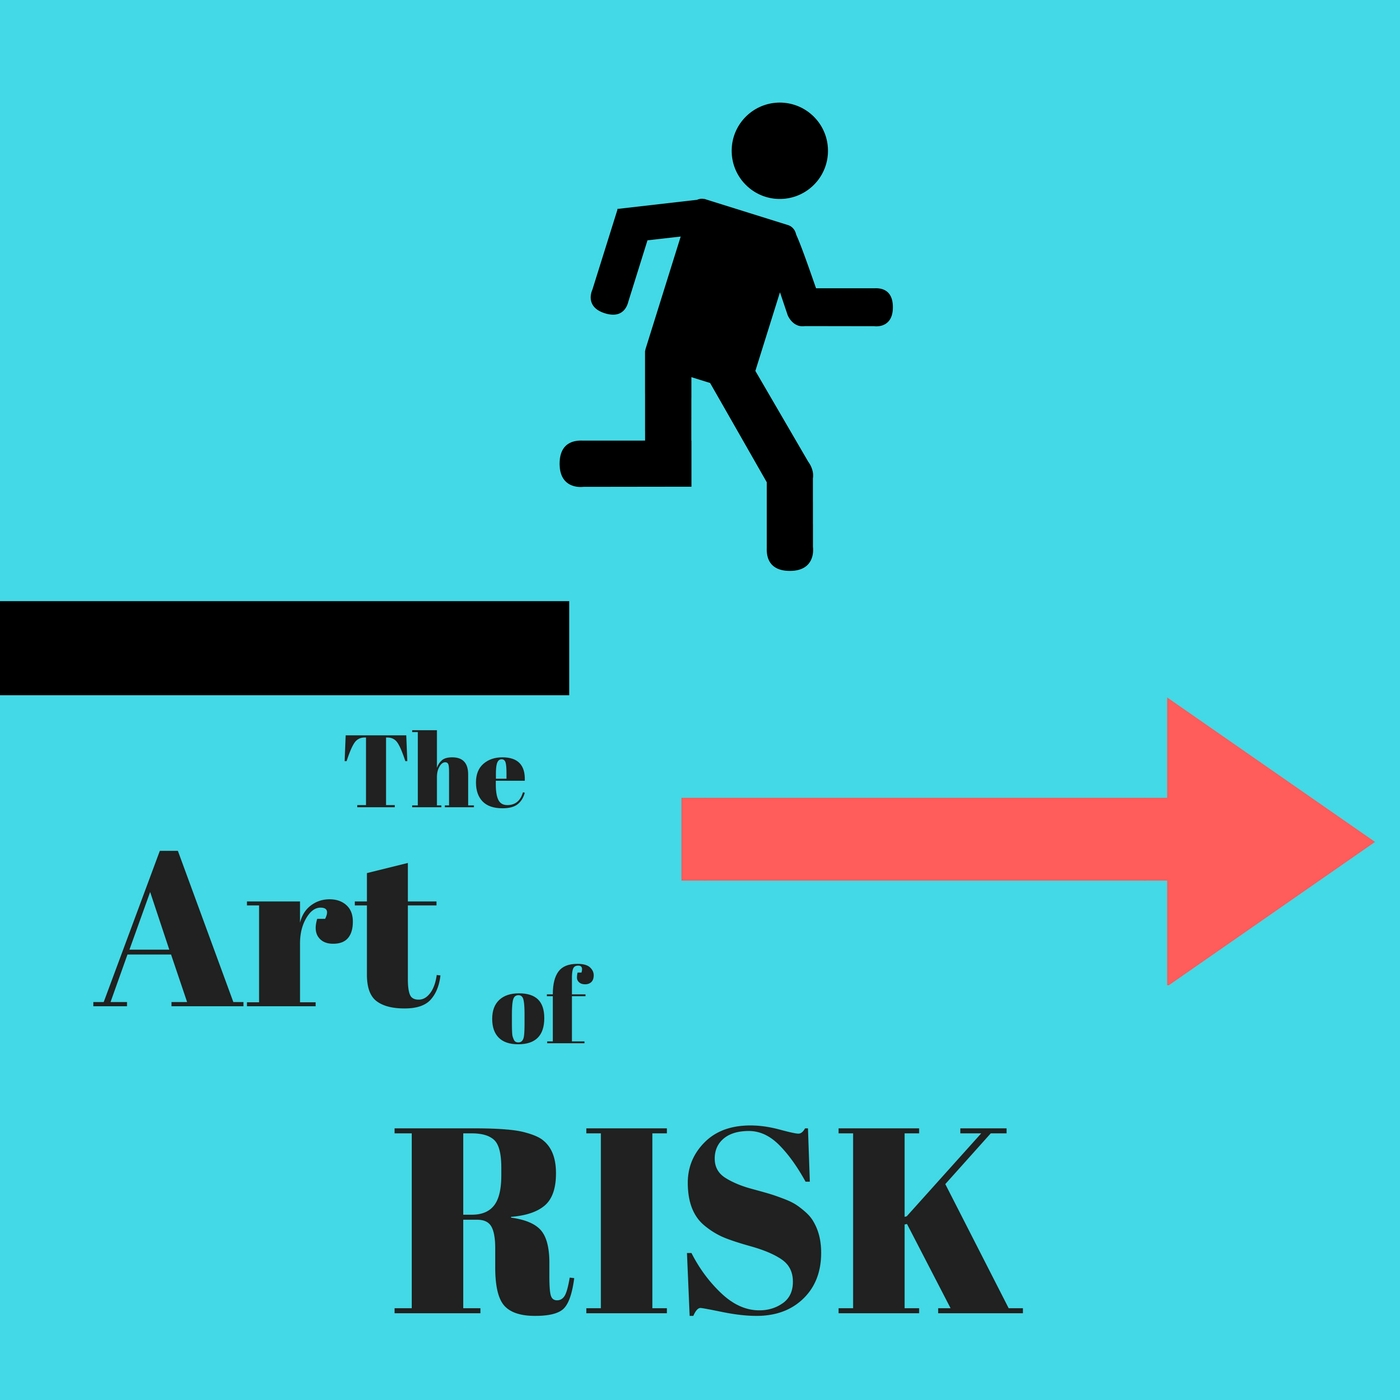 The_art_of_risk_6_small